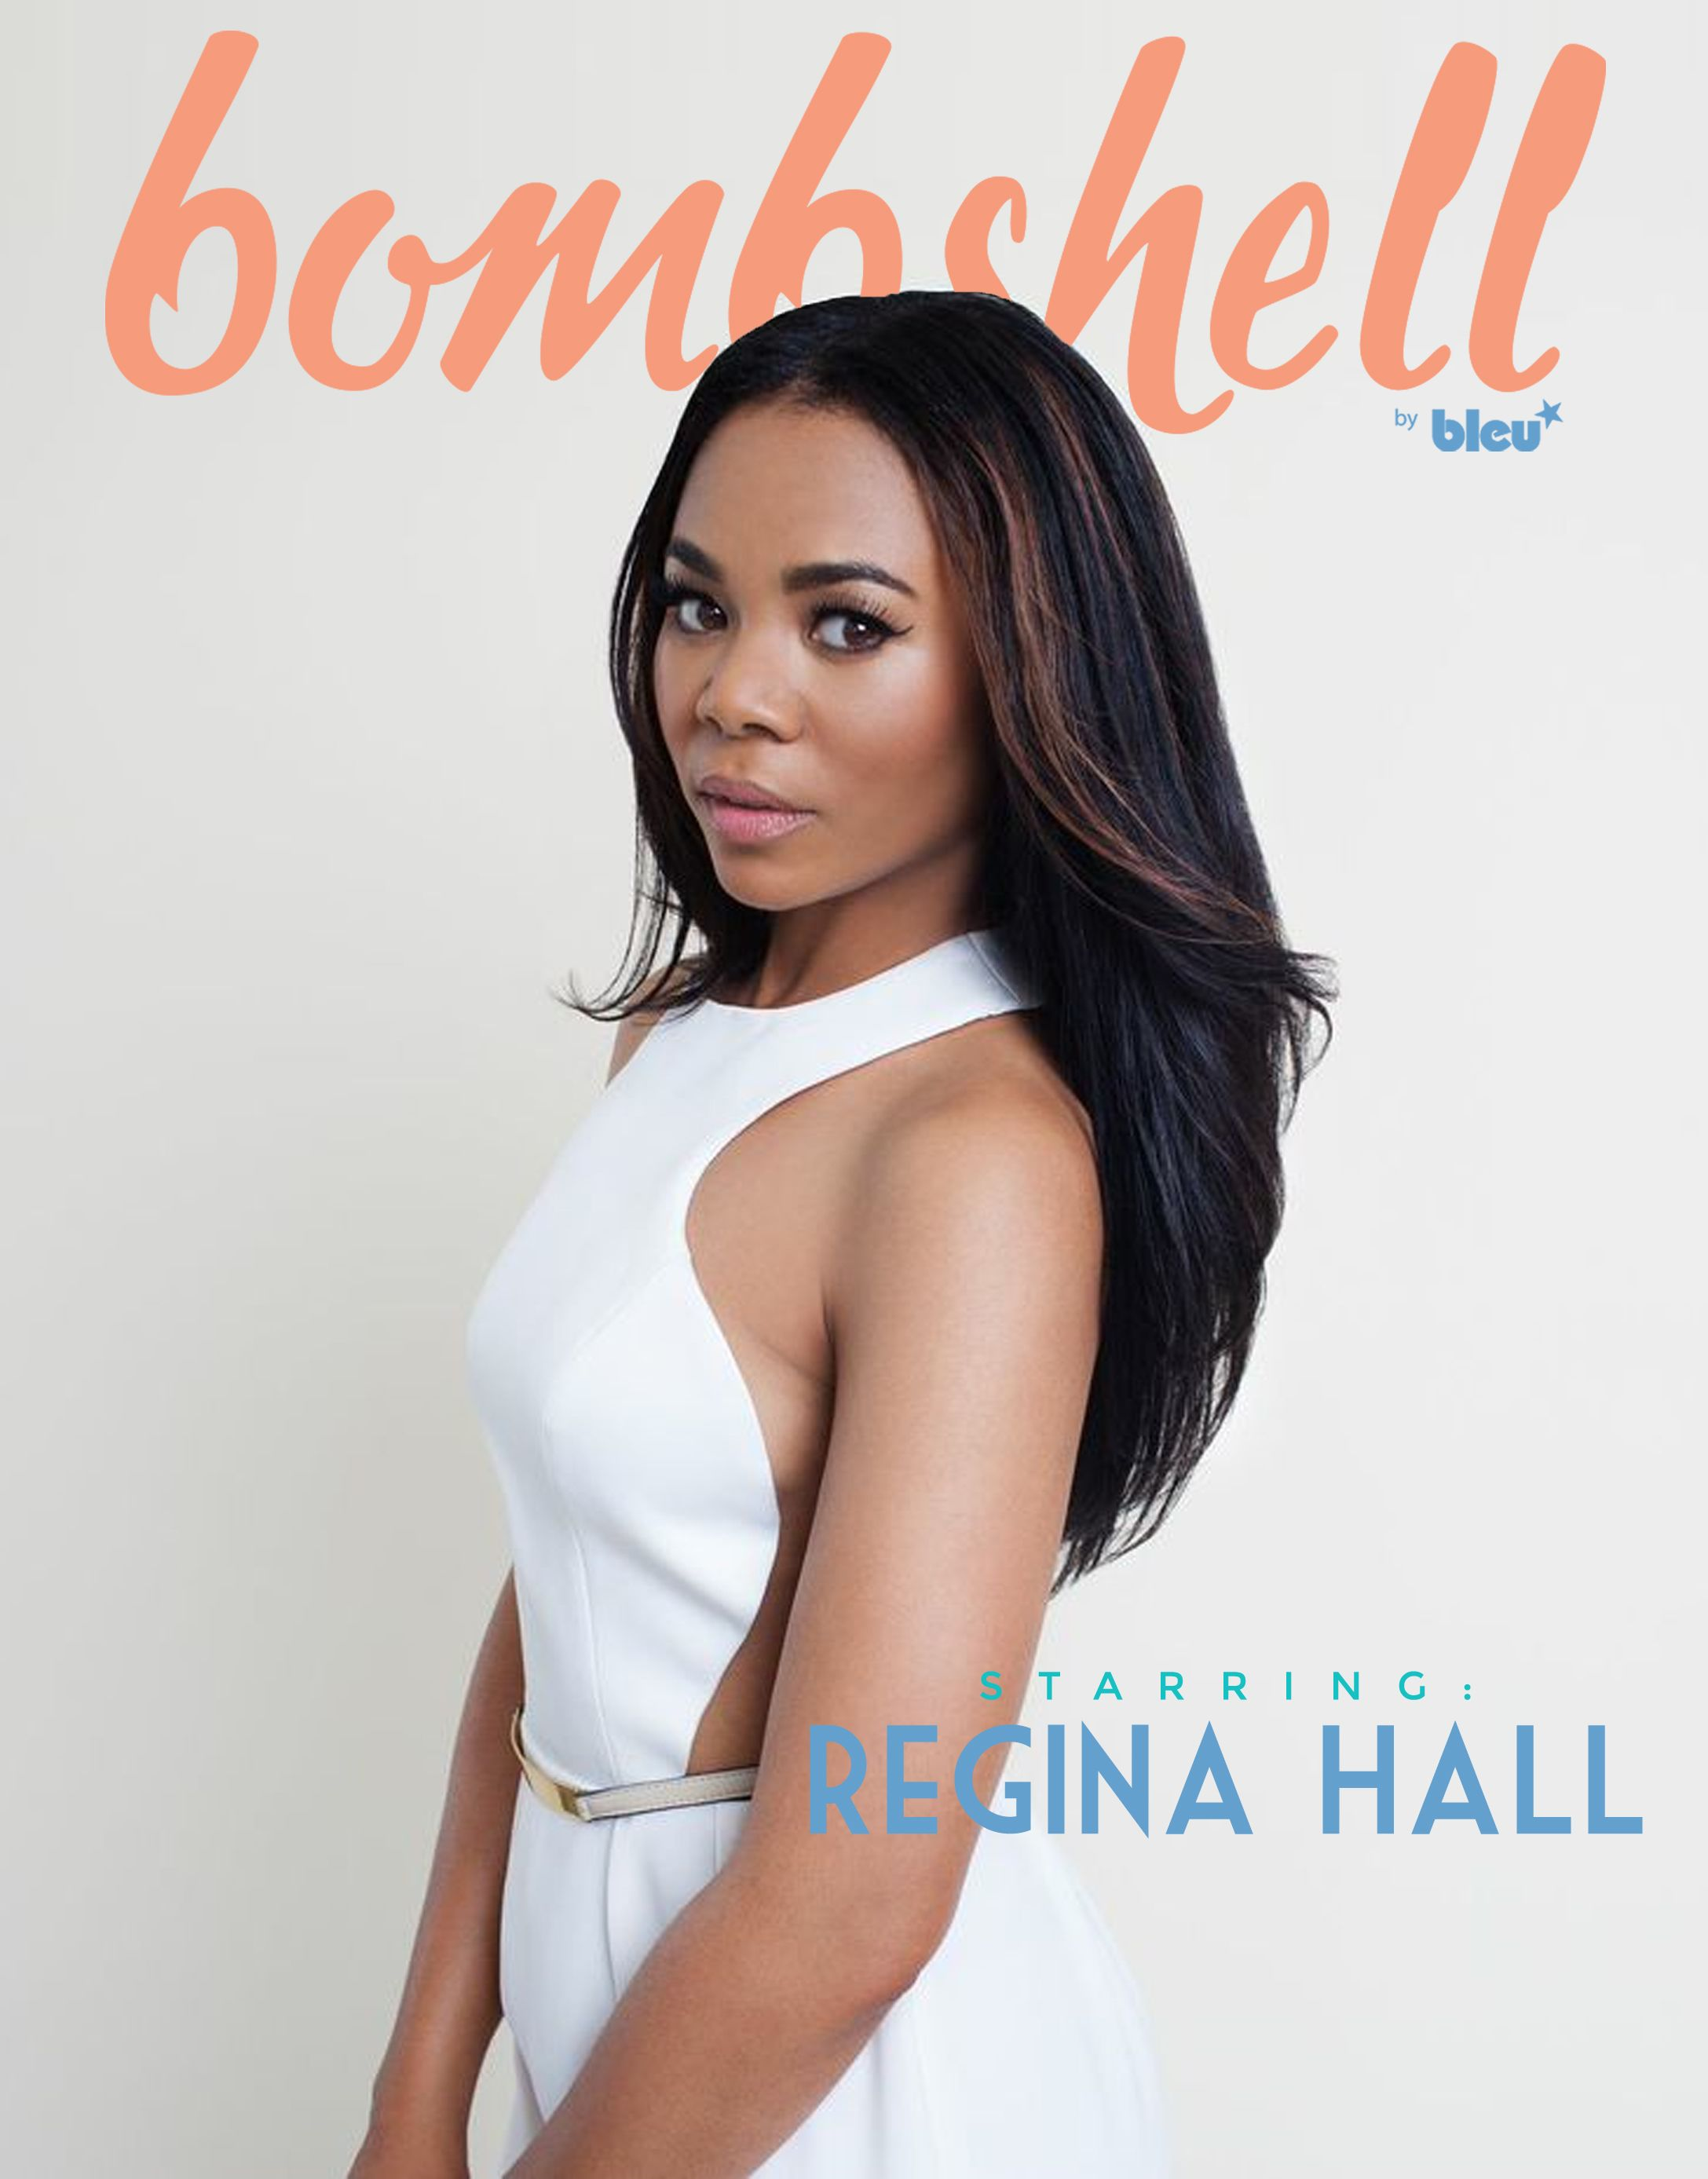 regina hall instagram